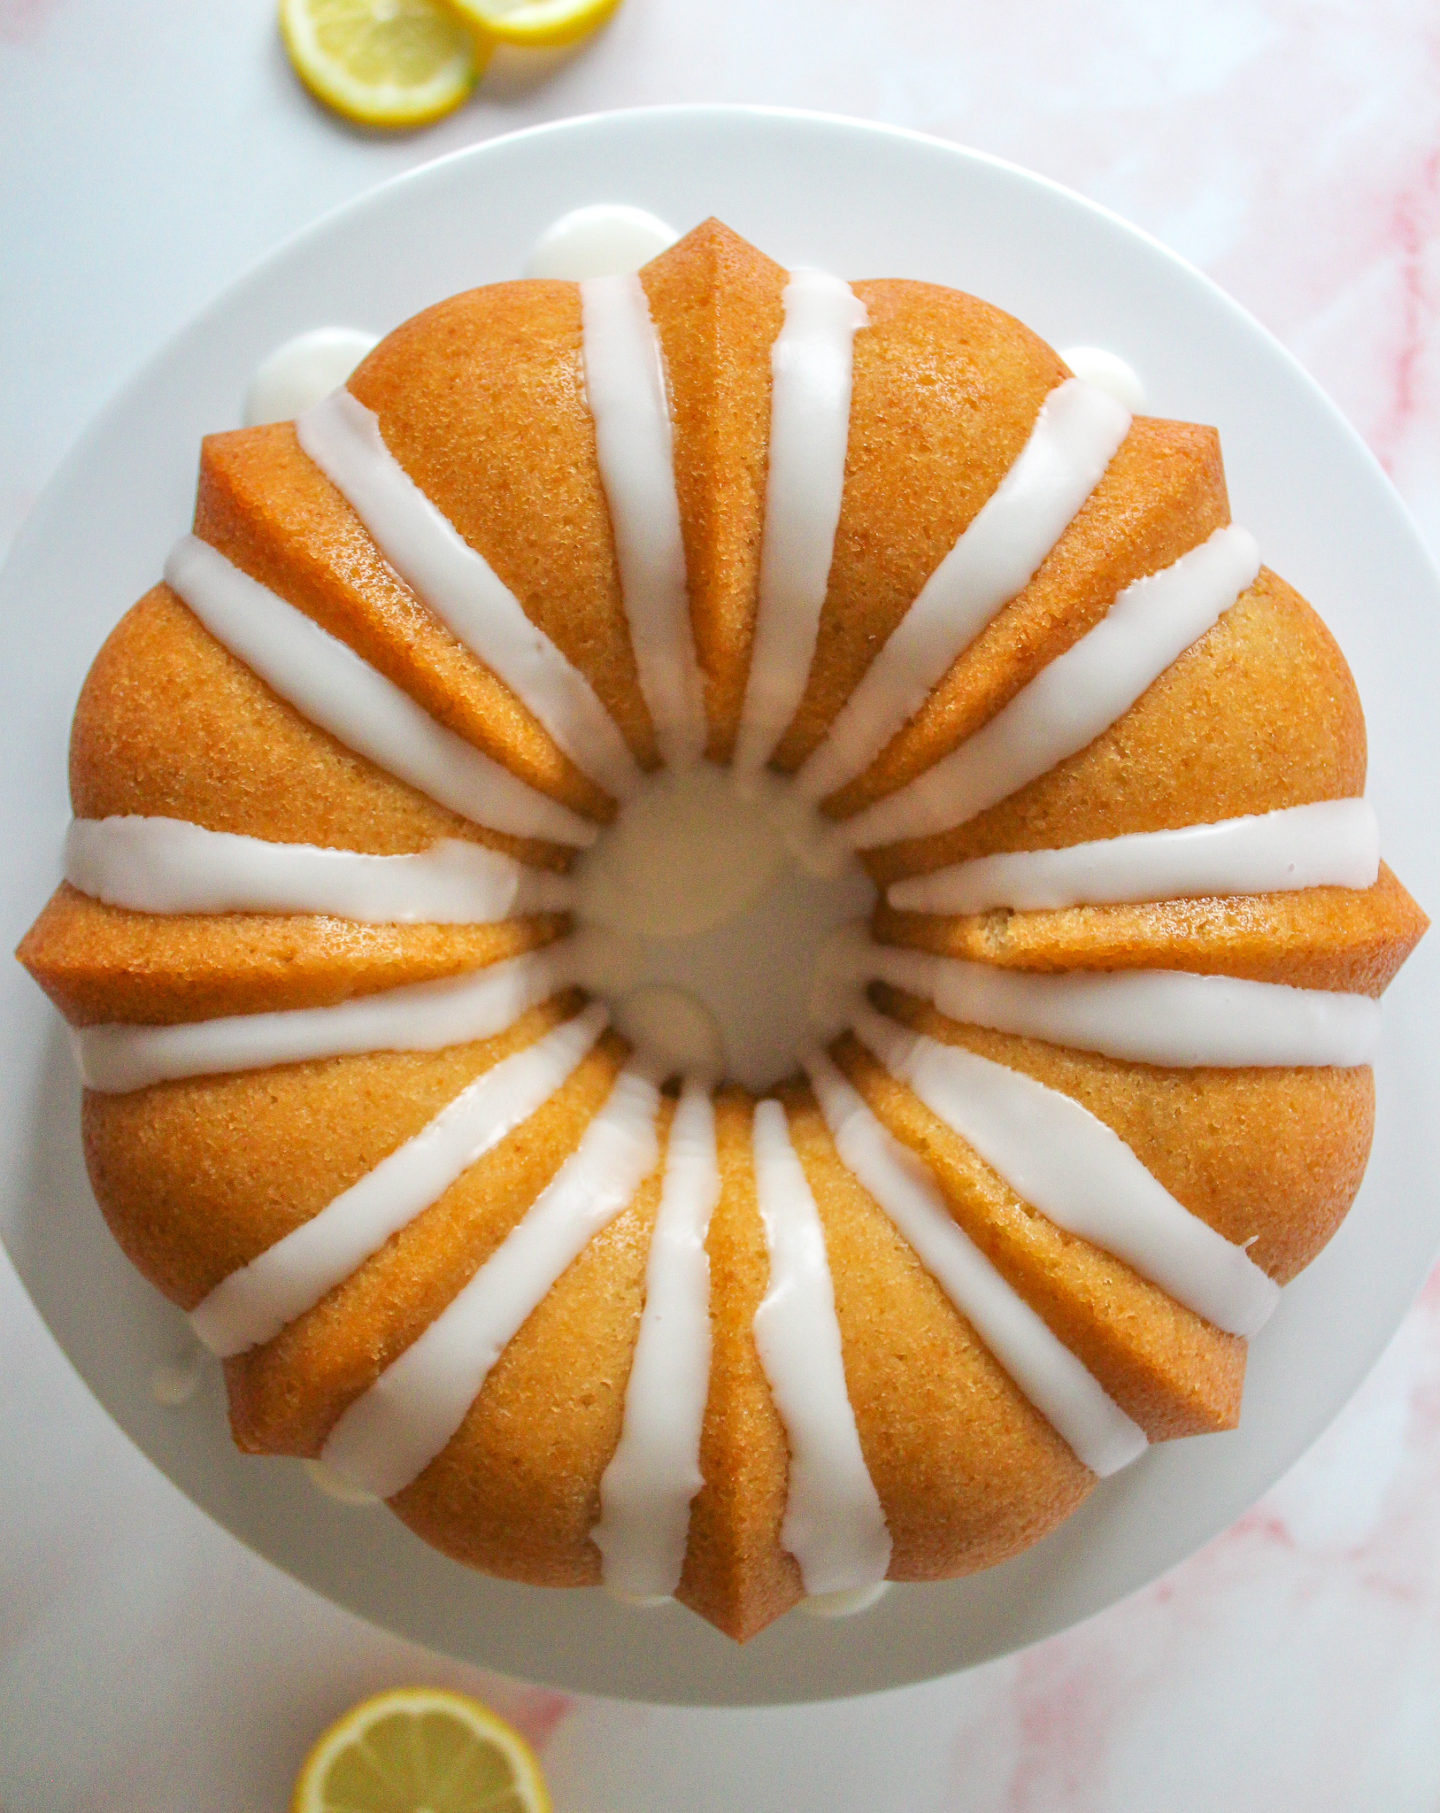 View from above of glazed lemon drizzle bundt cake